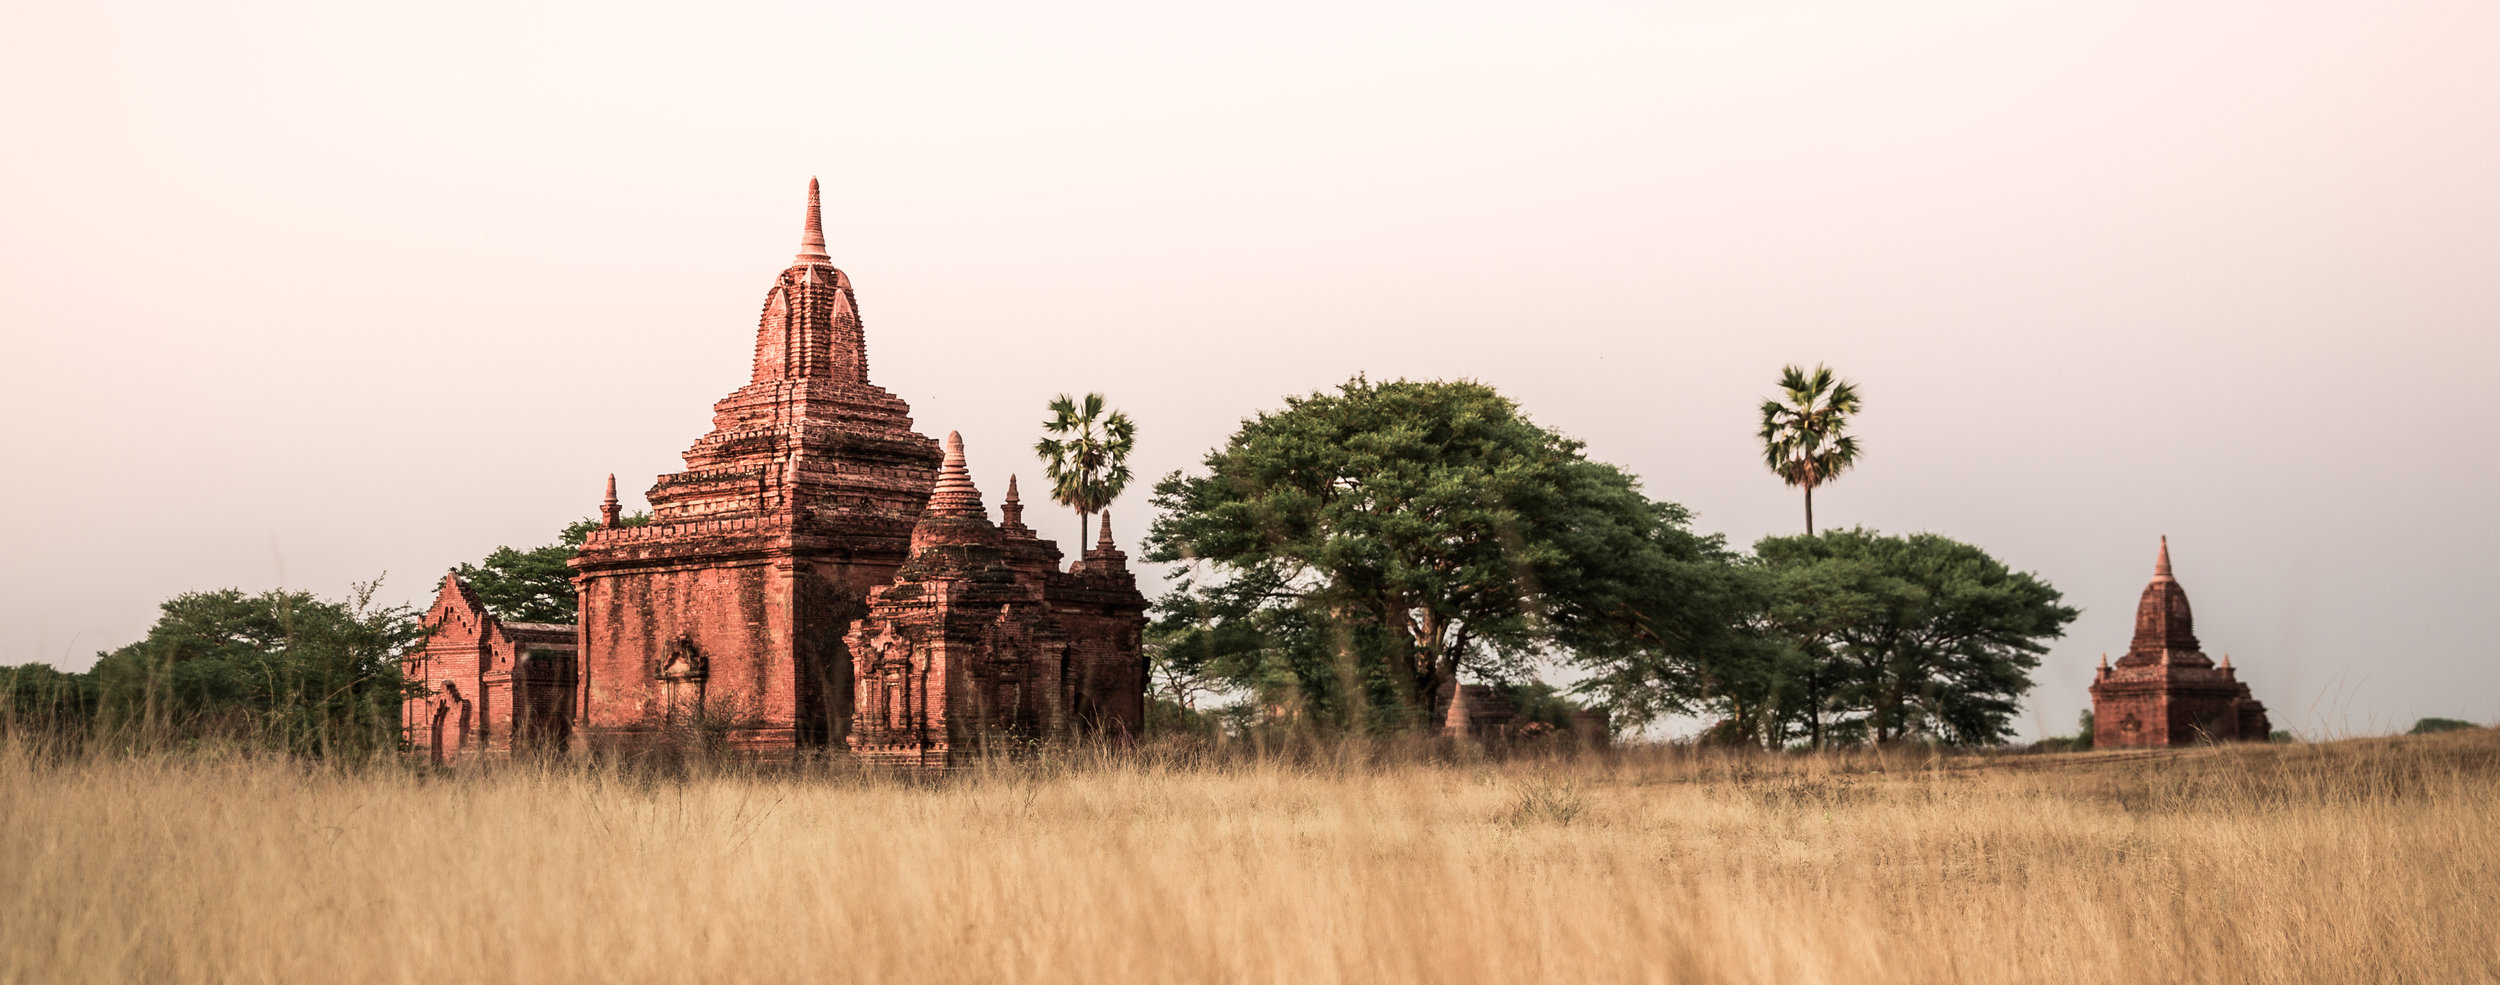 Bagan Myanmar Sunset Grass Temples 1